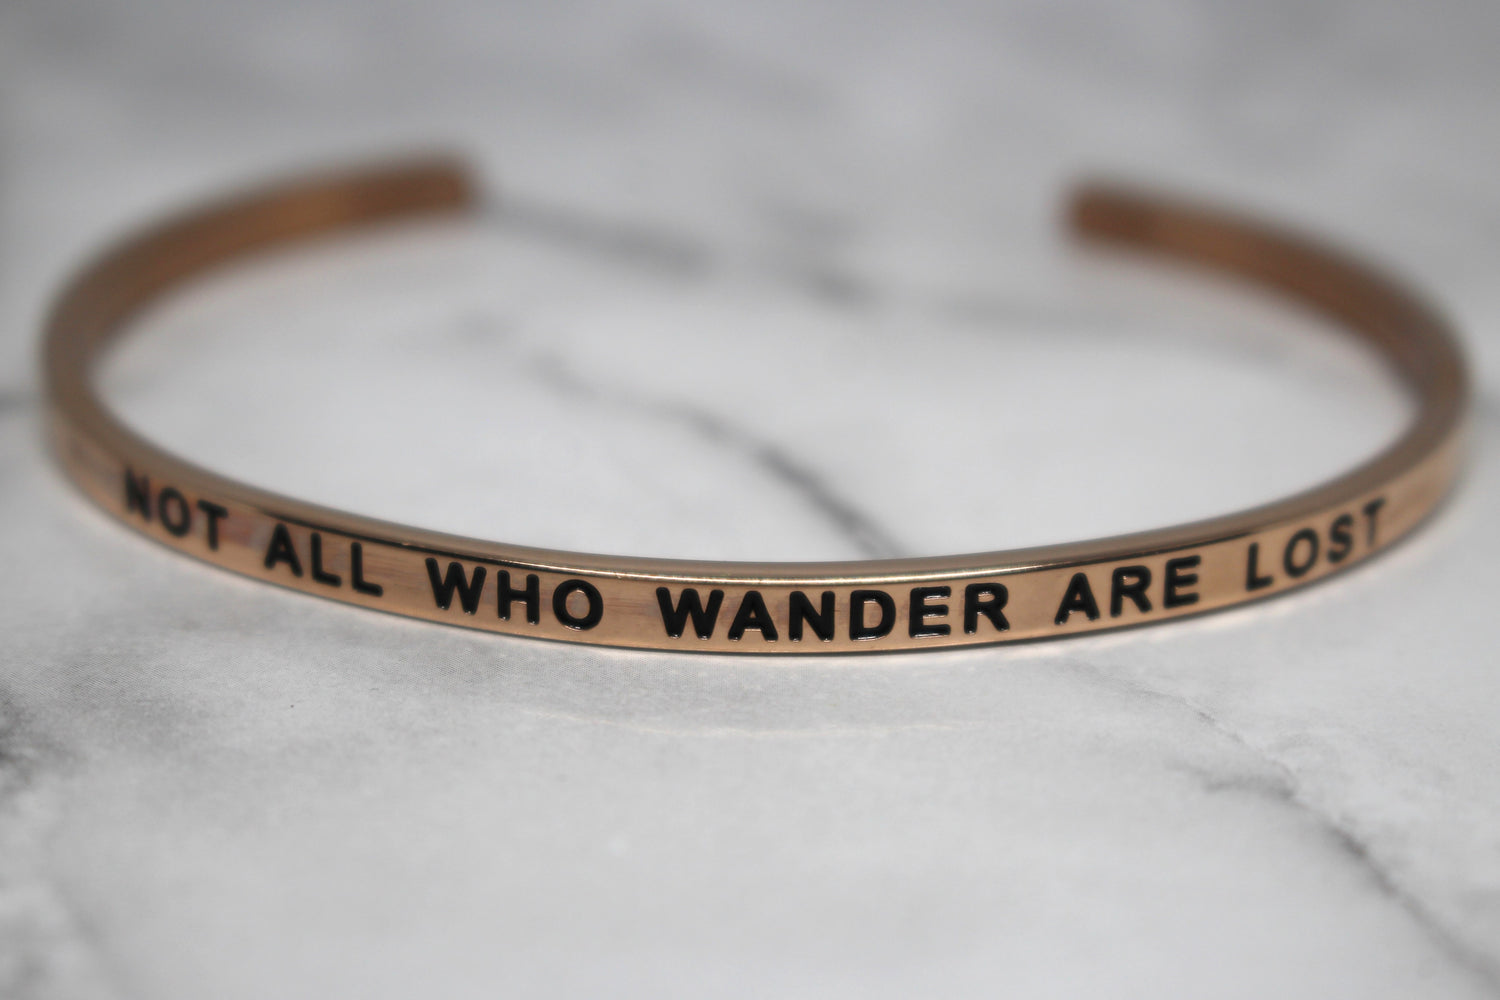 NOT ALL WHO WANDER ARE LOST* Cuff Bracelet- Rose Gold